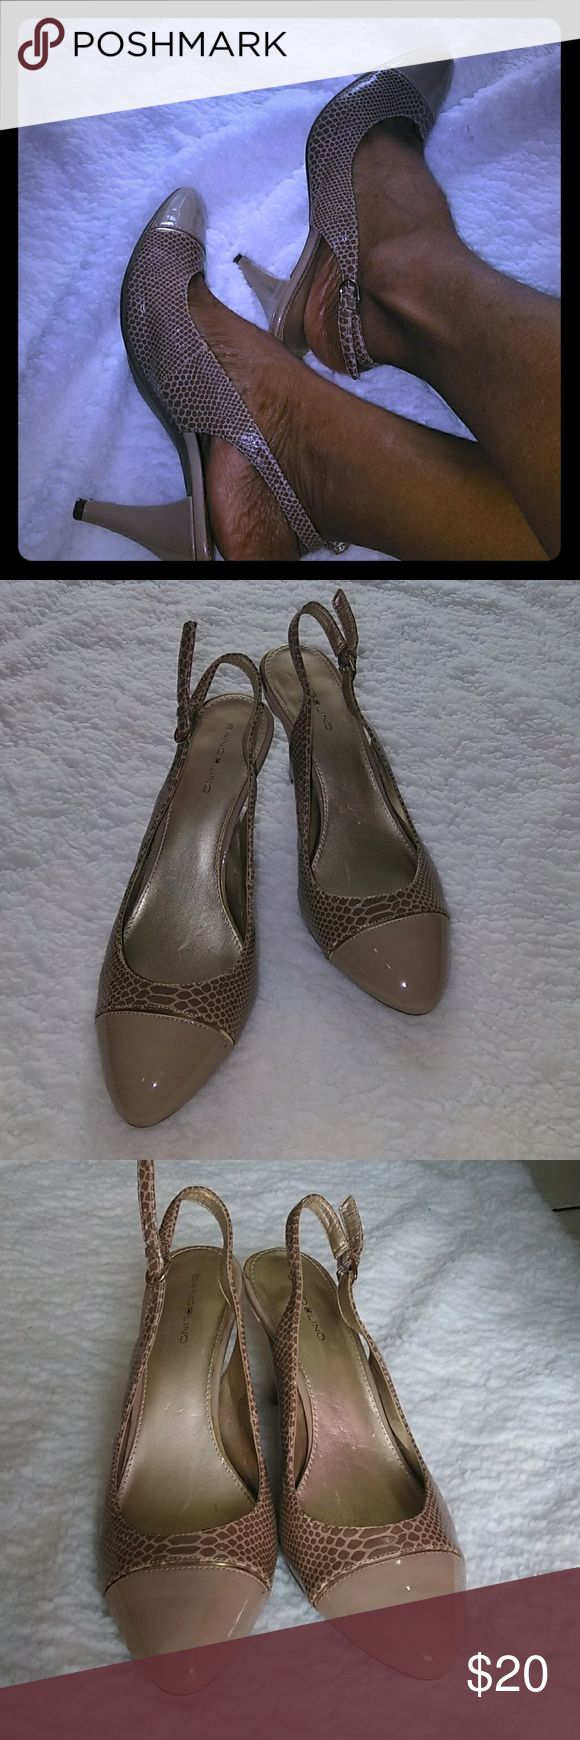 Shoes Slingback shoes, size 11m, 3 inches heels, Man Made Upper, Man Made Lining, Balance Man Made. Good condition, little wear, few small scratches on the heel as shown in picture number 6 and some dents inside the shoes. Bundle and Save! Happy shopping 😊 Bandolino Shoes Heels